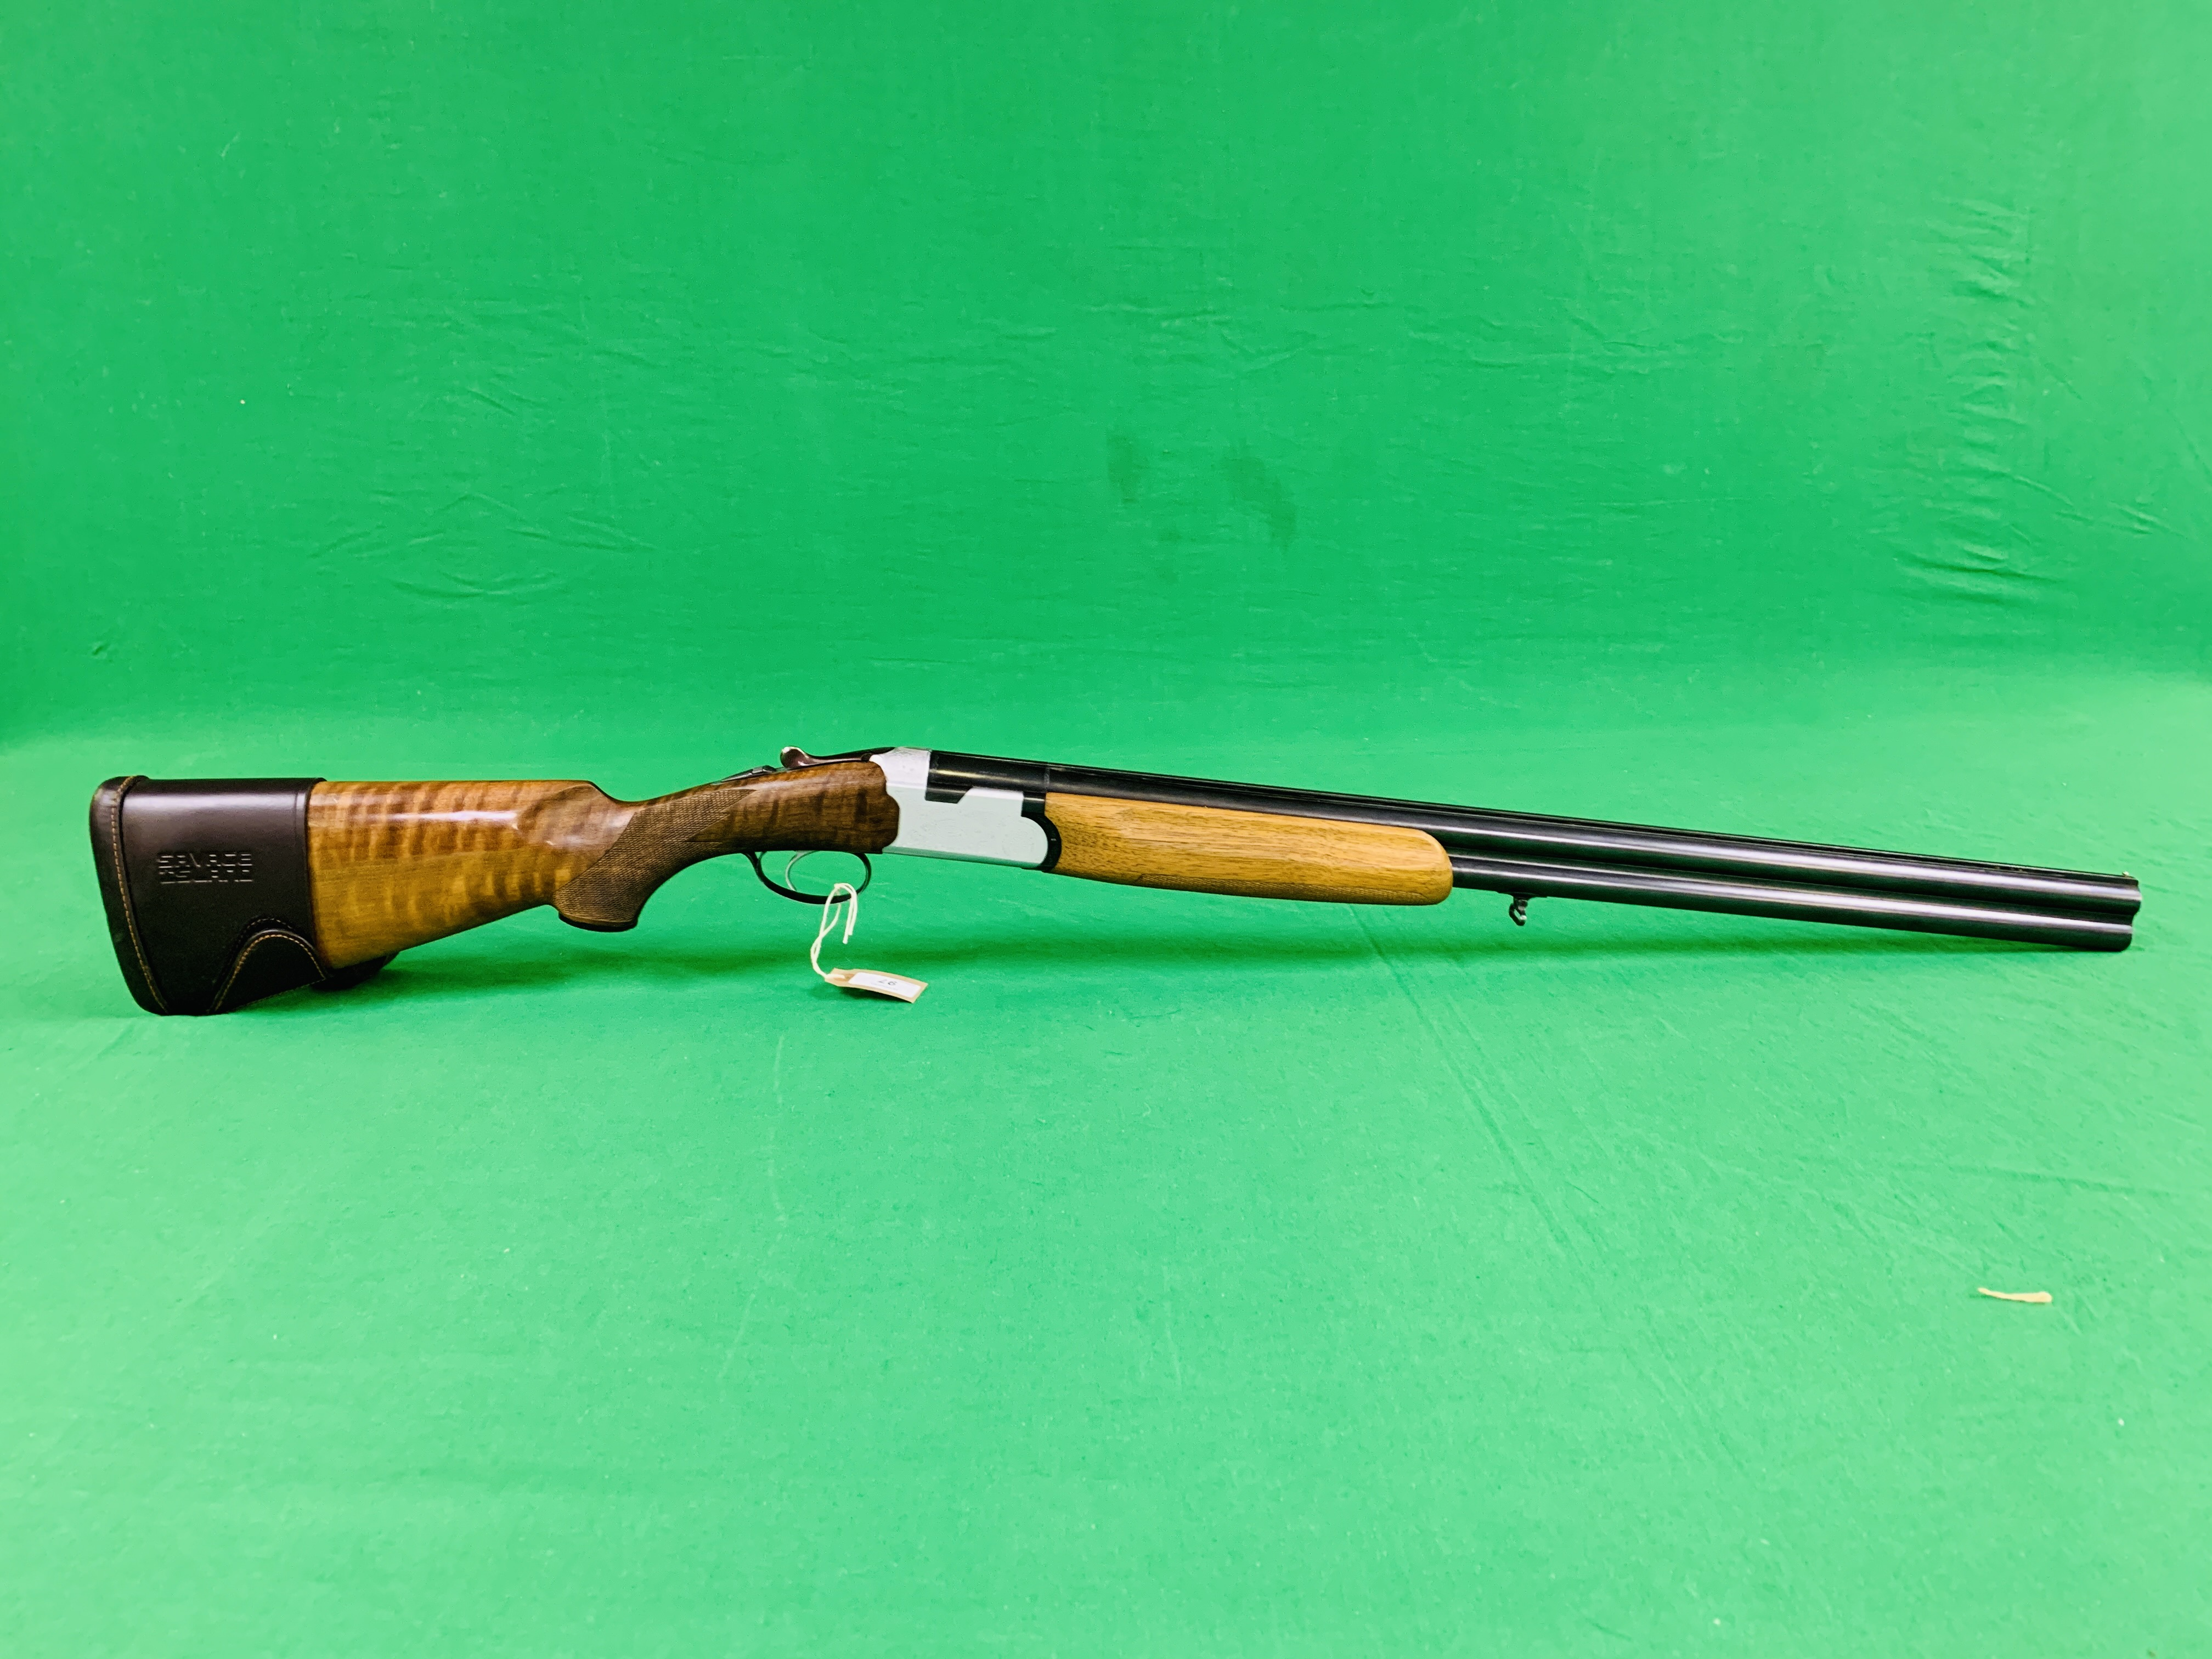 12 BORE BERETTA OVER AND UNDER SHOTGUN # B17388B WITH GUN SLEEVE - (ALL GUNS TO BE INSPECTED AND